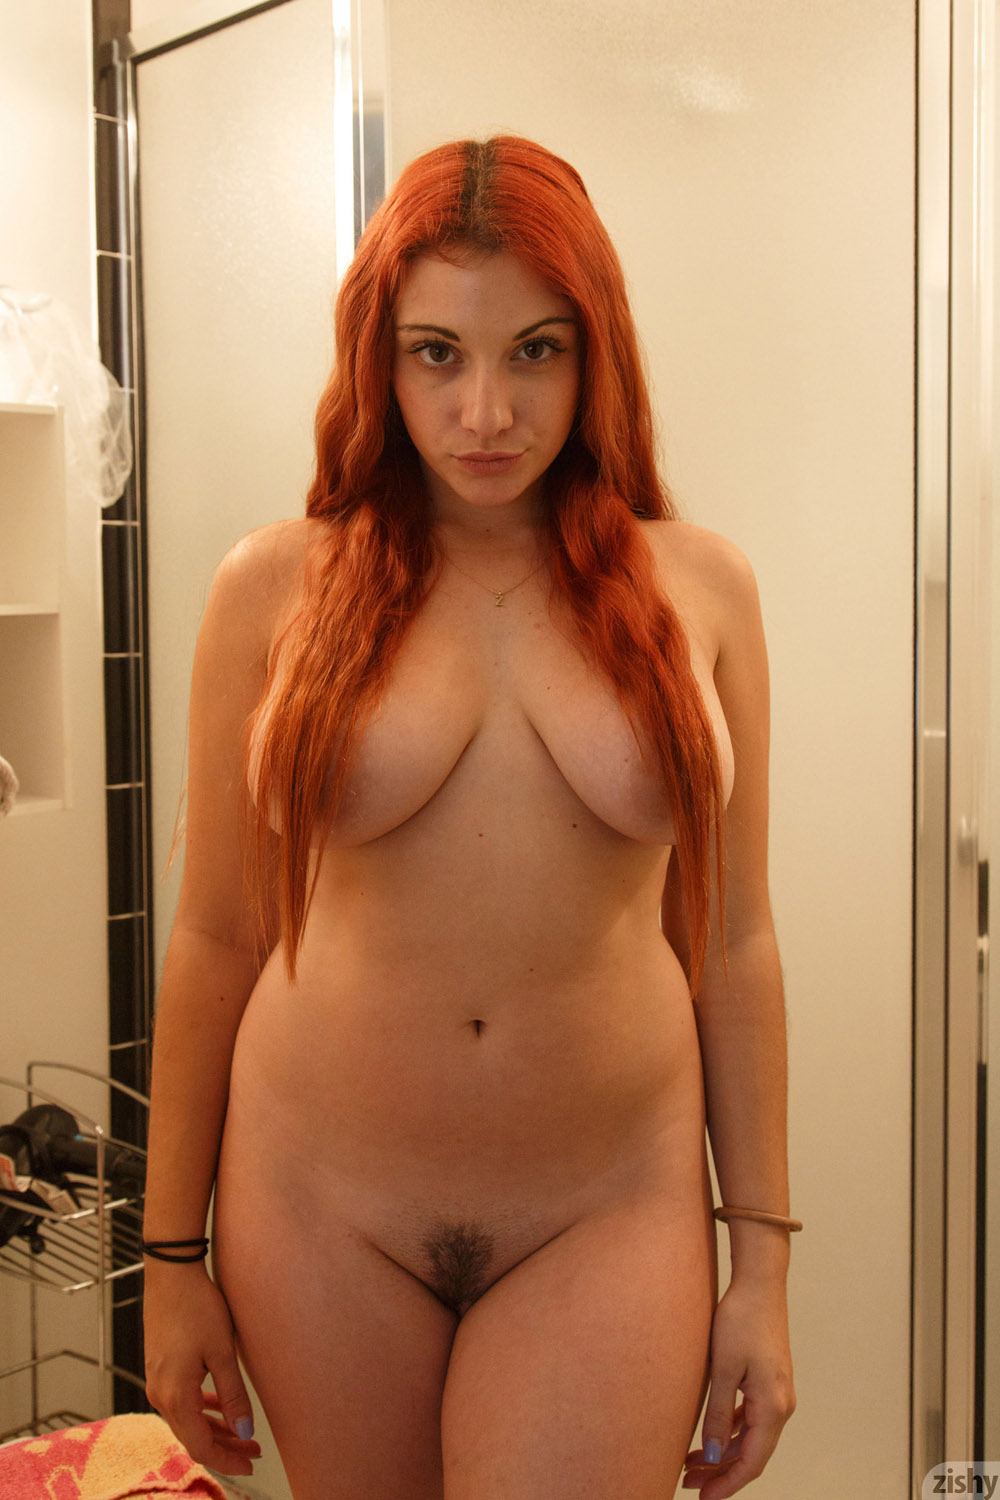 Watch Curvy Redhead Gets Naked And Plays With Her Pussy On Webcam